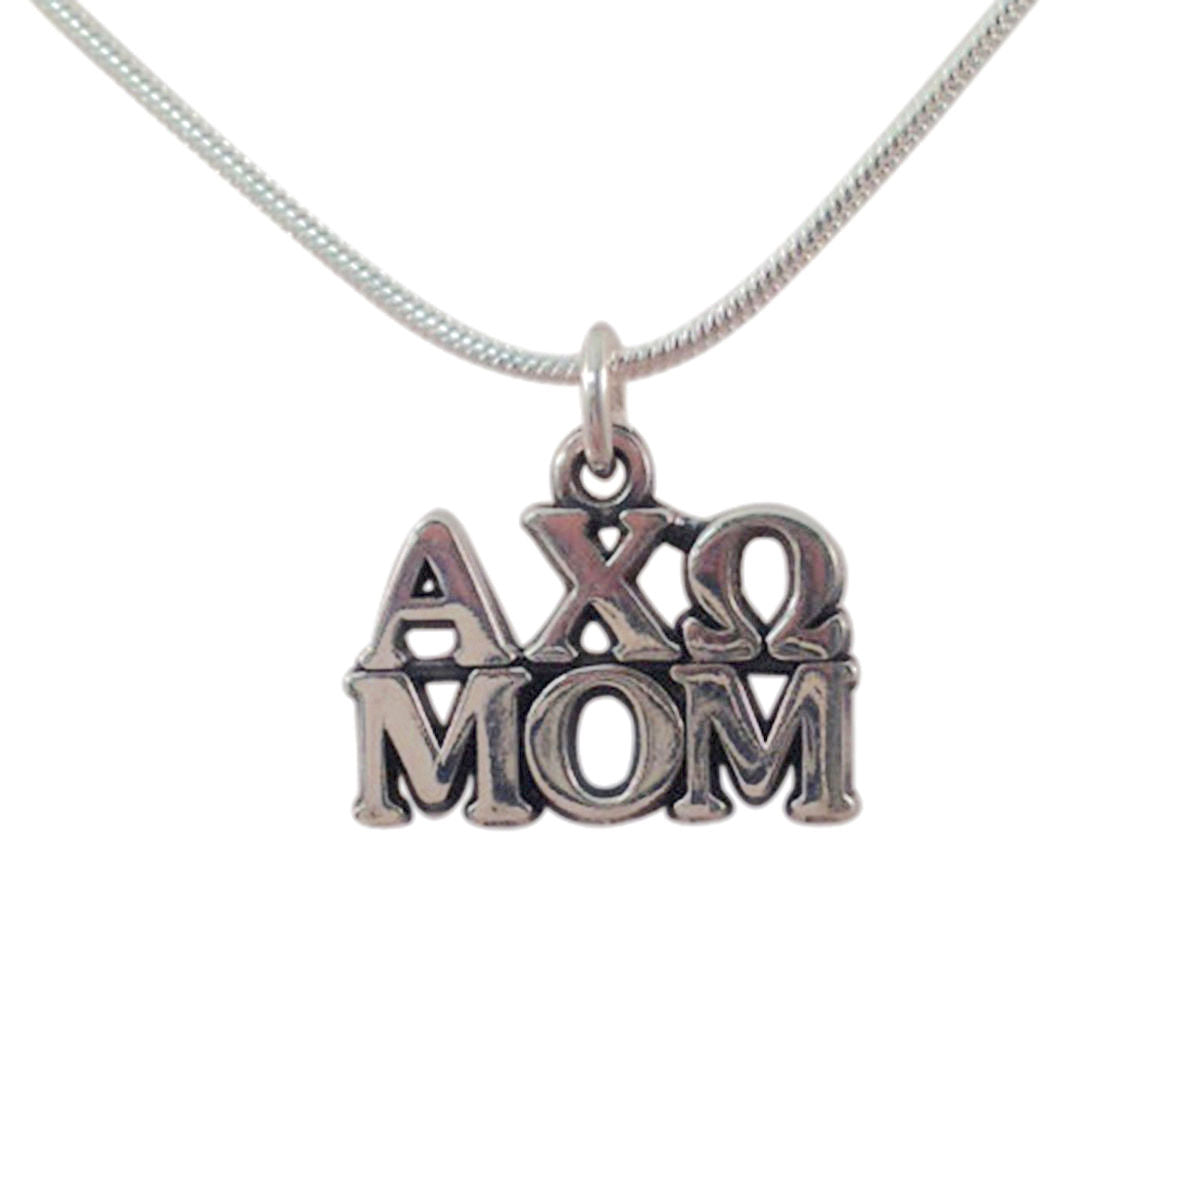 Alpha Chi Omega Mom charm the perfect sorority mom gift!